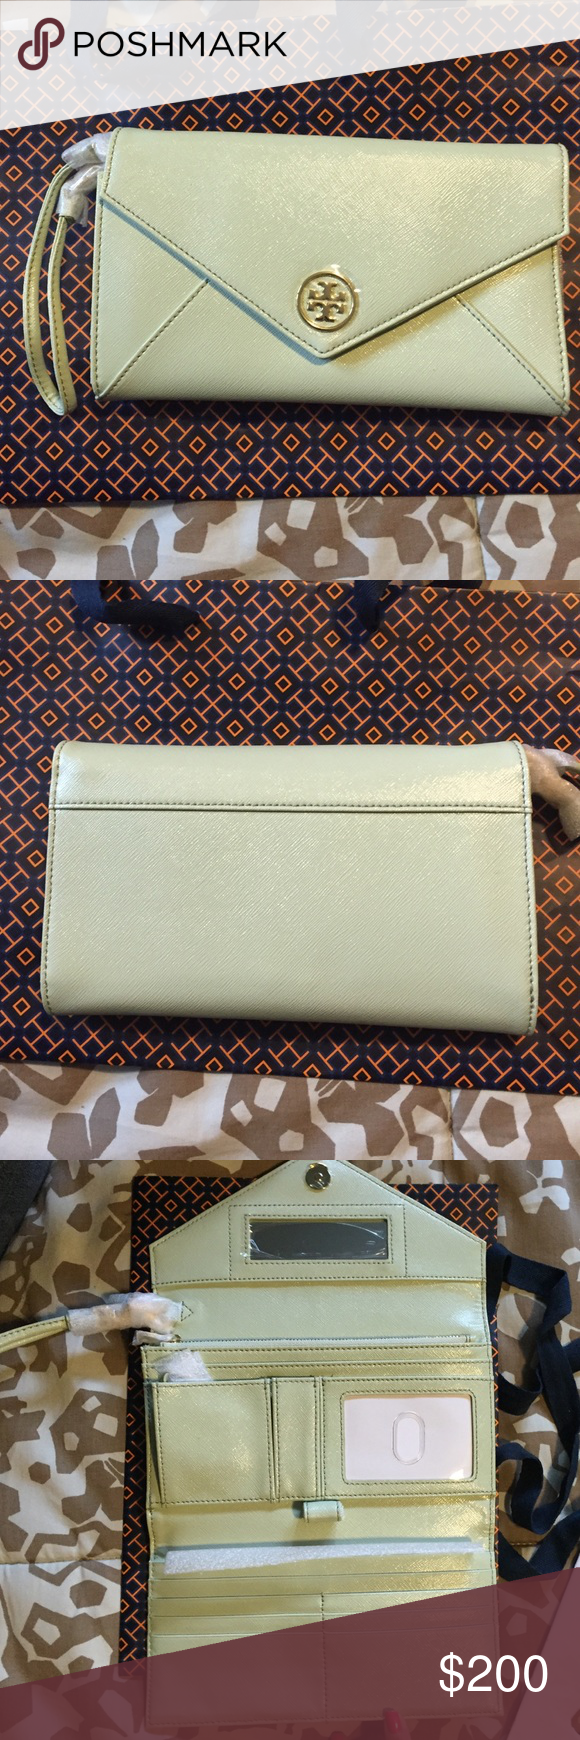 NWT-Tory Burch - Mint Julep color wristlet/clutch Mint Julep Colored Tory Burch clutch with wristlet handle for a ladies luncheon. Size- approximately 8 in. long and 5 in. Height. Fits a phone, check book, and has many pockets and slots for items along with mirror. Magnetic closure. Tory Burch Bags Clutches & Wristlets